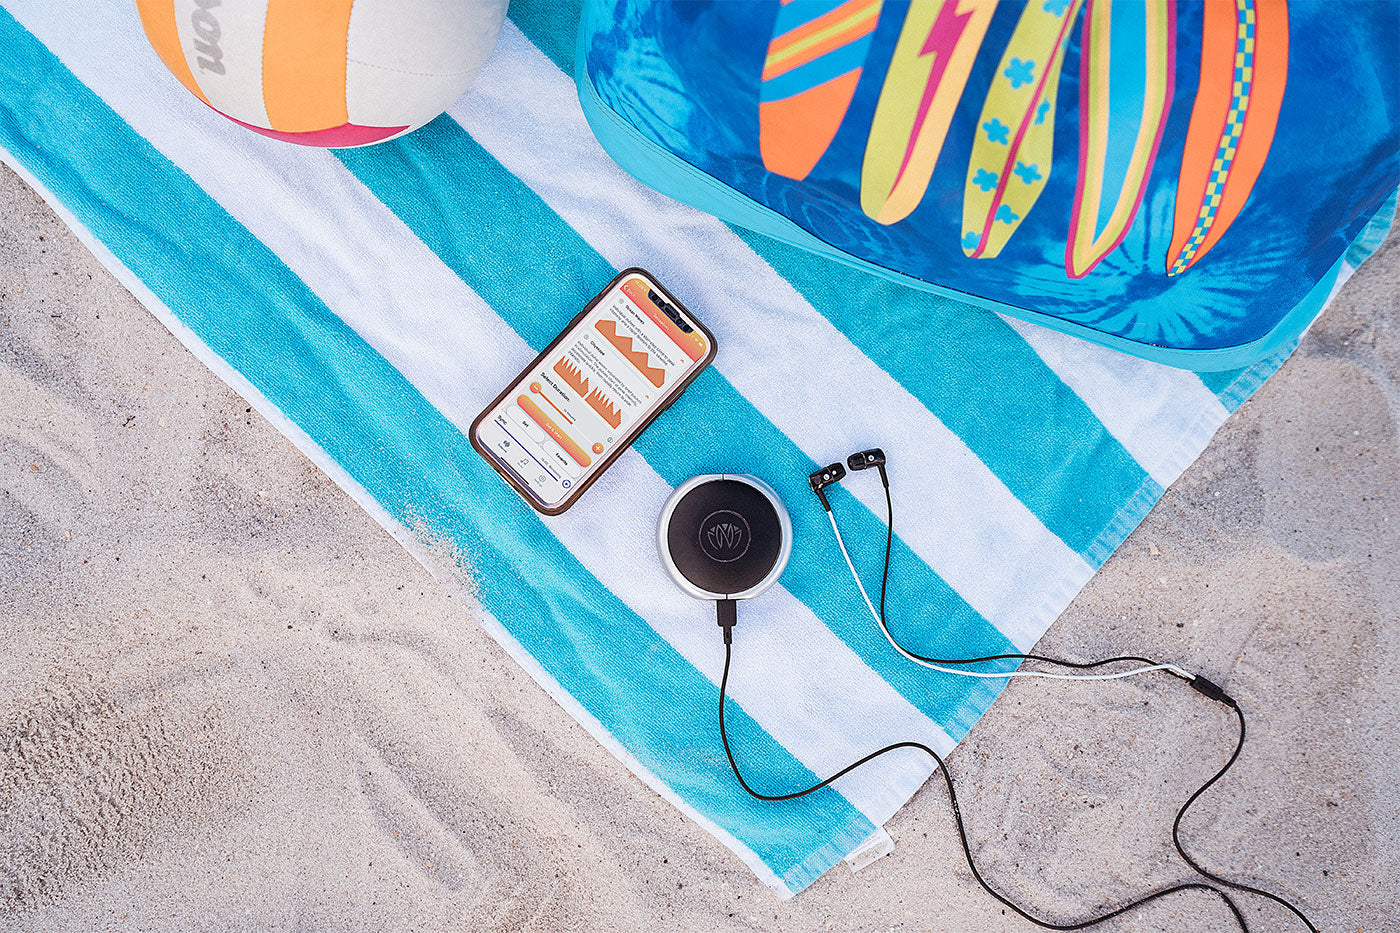 Xen by Neuvana makes discovering calm and balance easy, providing users with wellness benefits while listening to music.